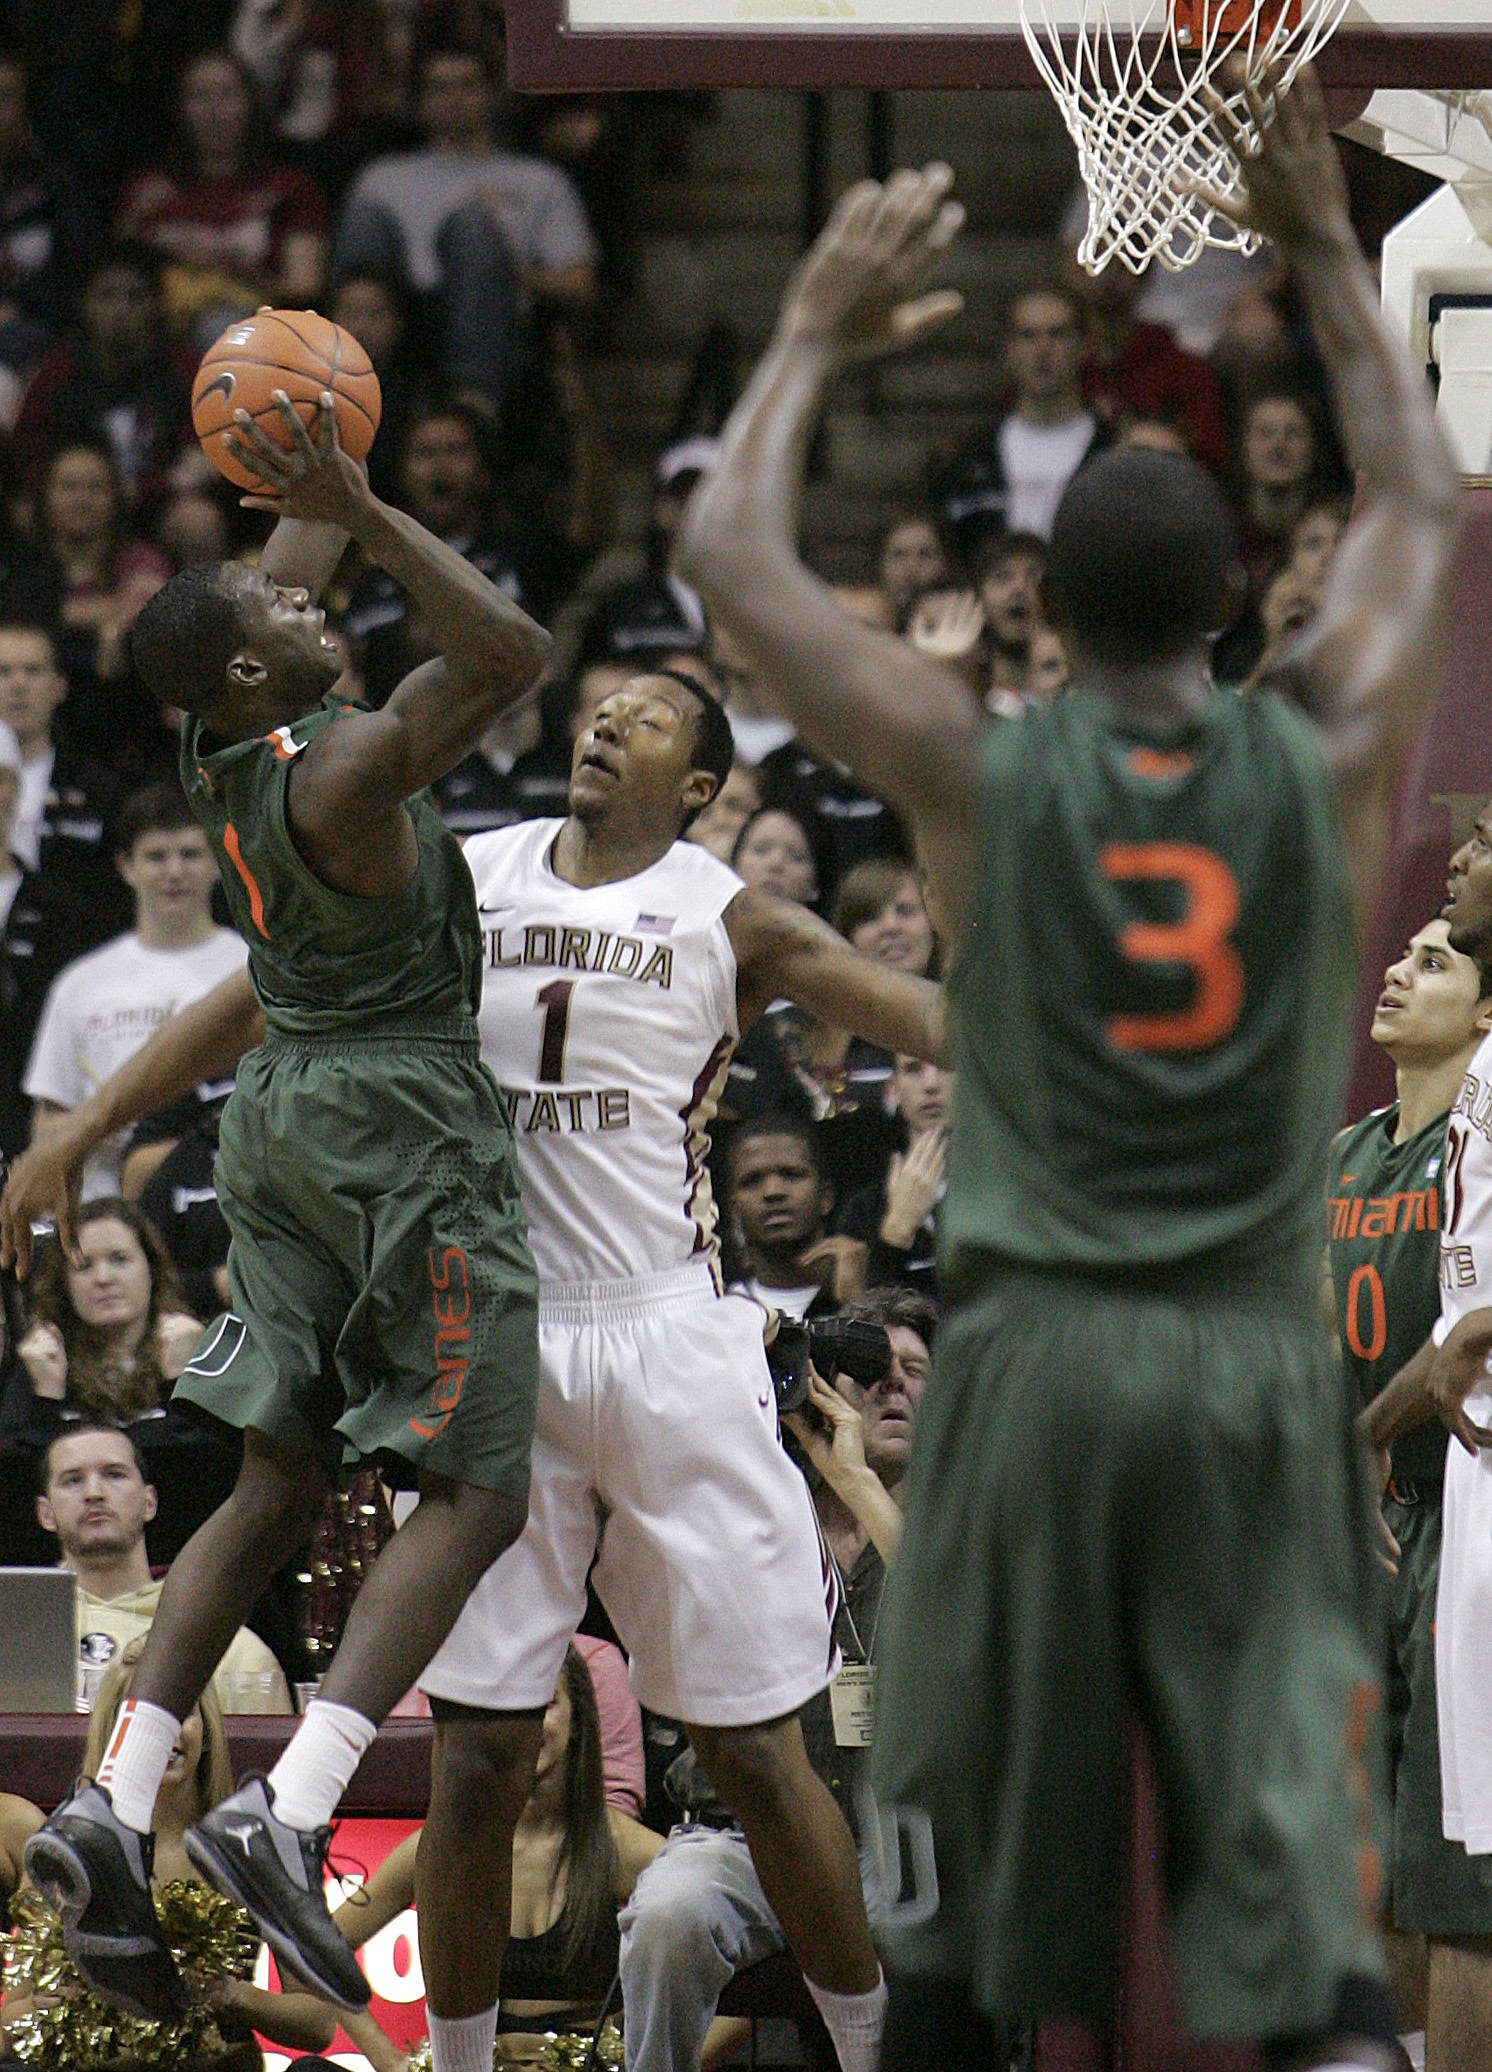 Miami's Durand Scott attempts a shot over the defense of Florida State's Xavier Gibson in the second half of an NCAA college basketball game on Saturday, Feb. 11, 2012 in Tallahassee, Fla.(AP Photo/Steve Cannon)